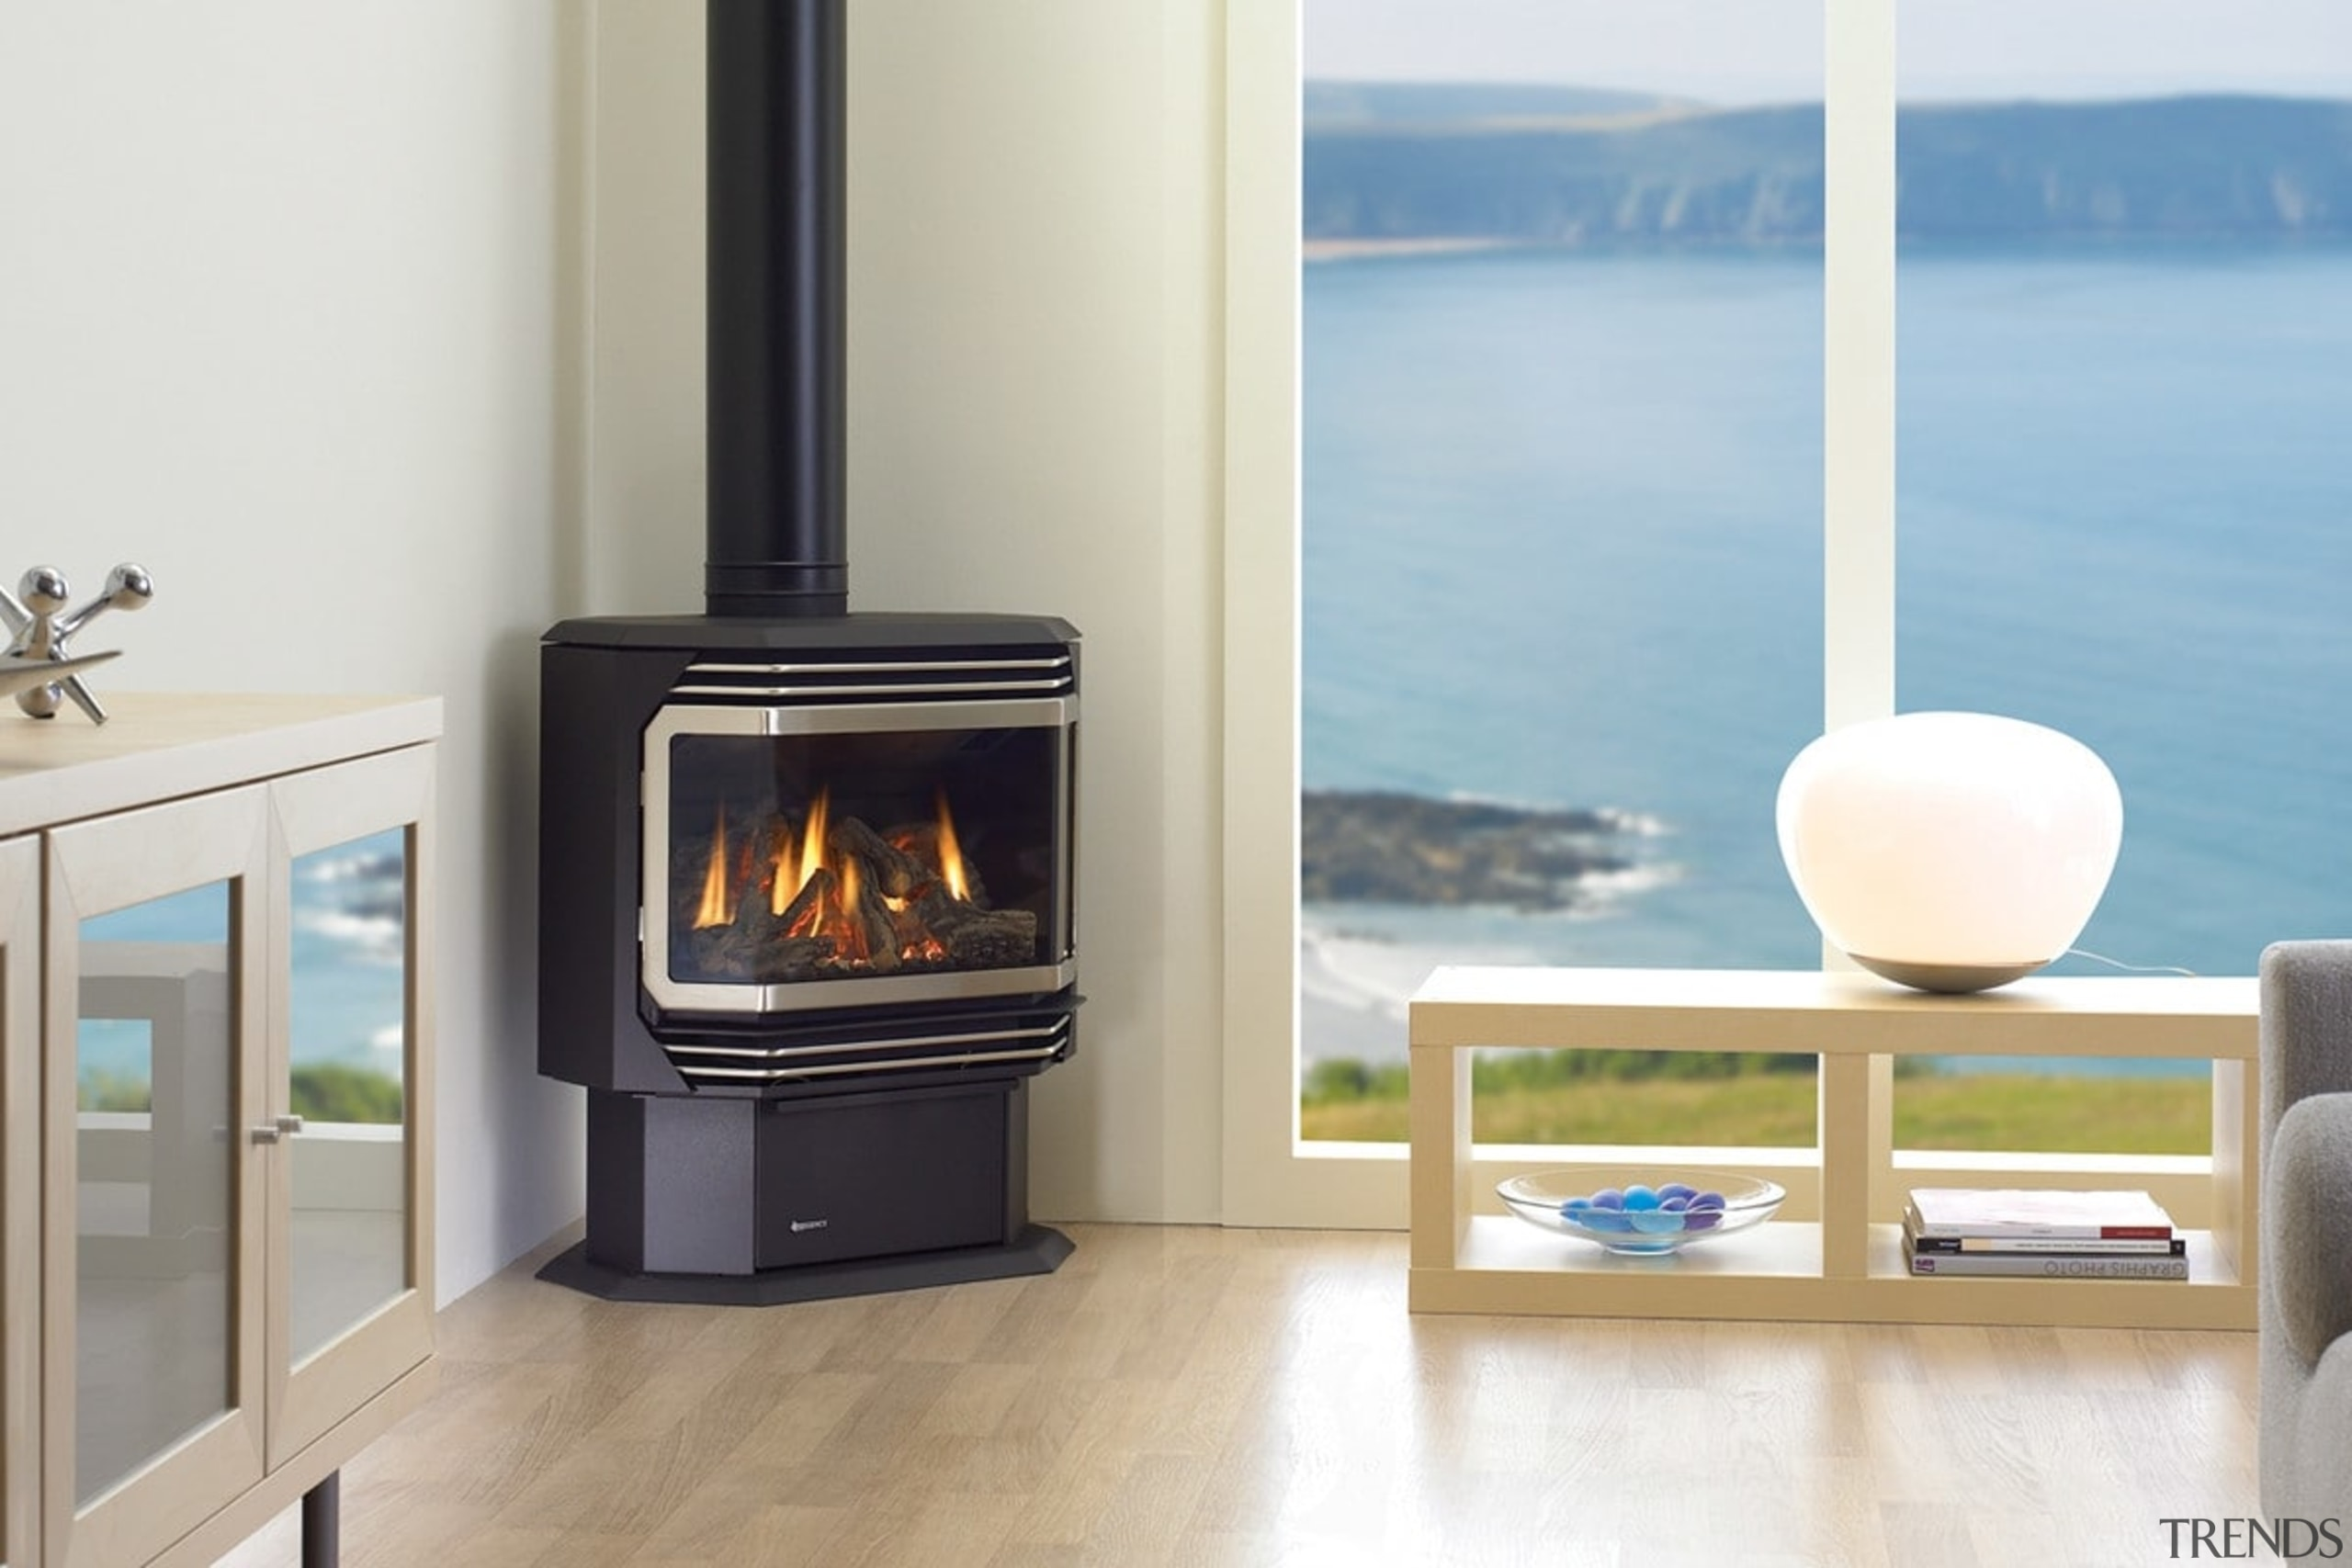 Indoor Gas Fires - hearth | heat | hearth, heat, home appliance, major appliance, product, wood burning stove, white